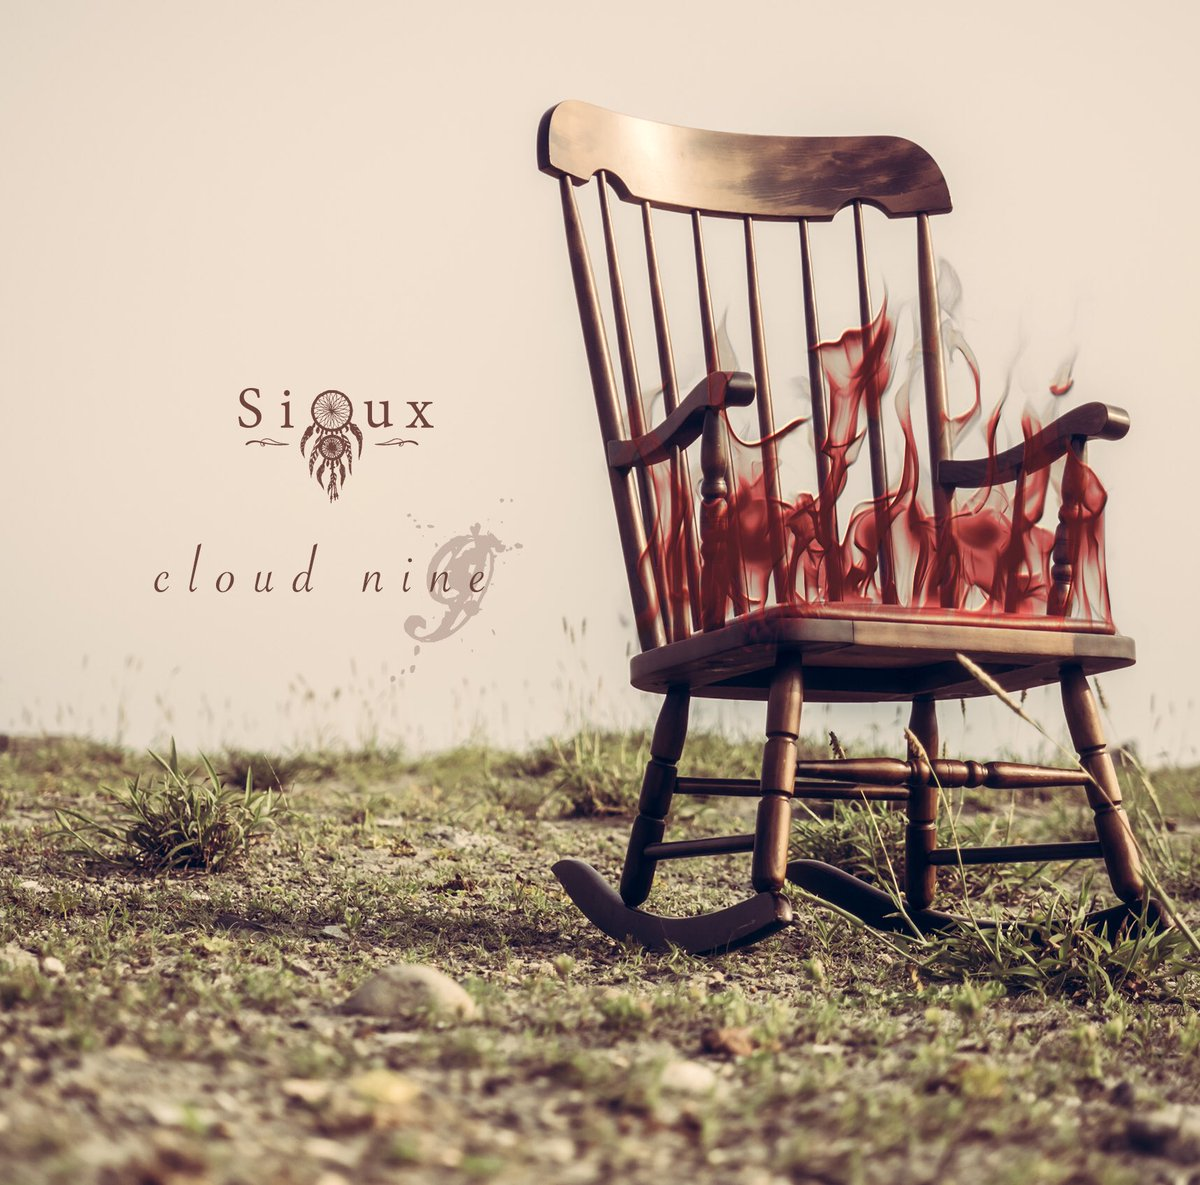 Sioux - Cloud Nine single